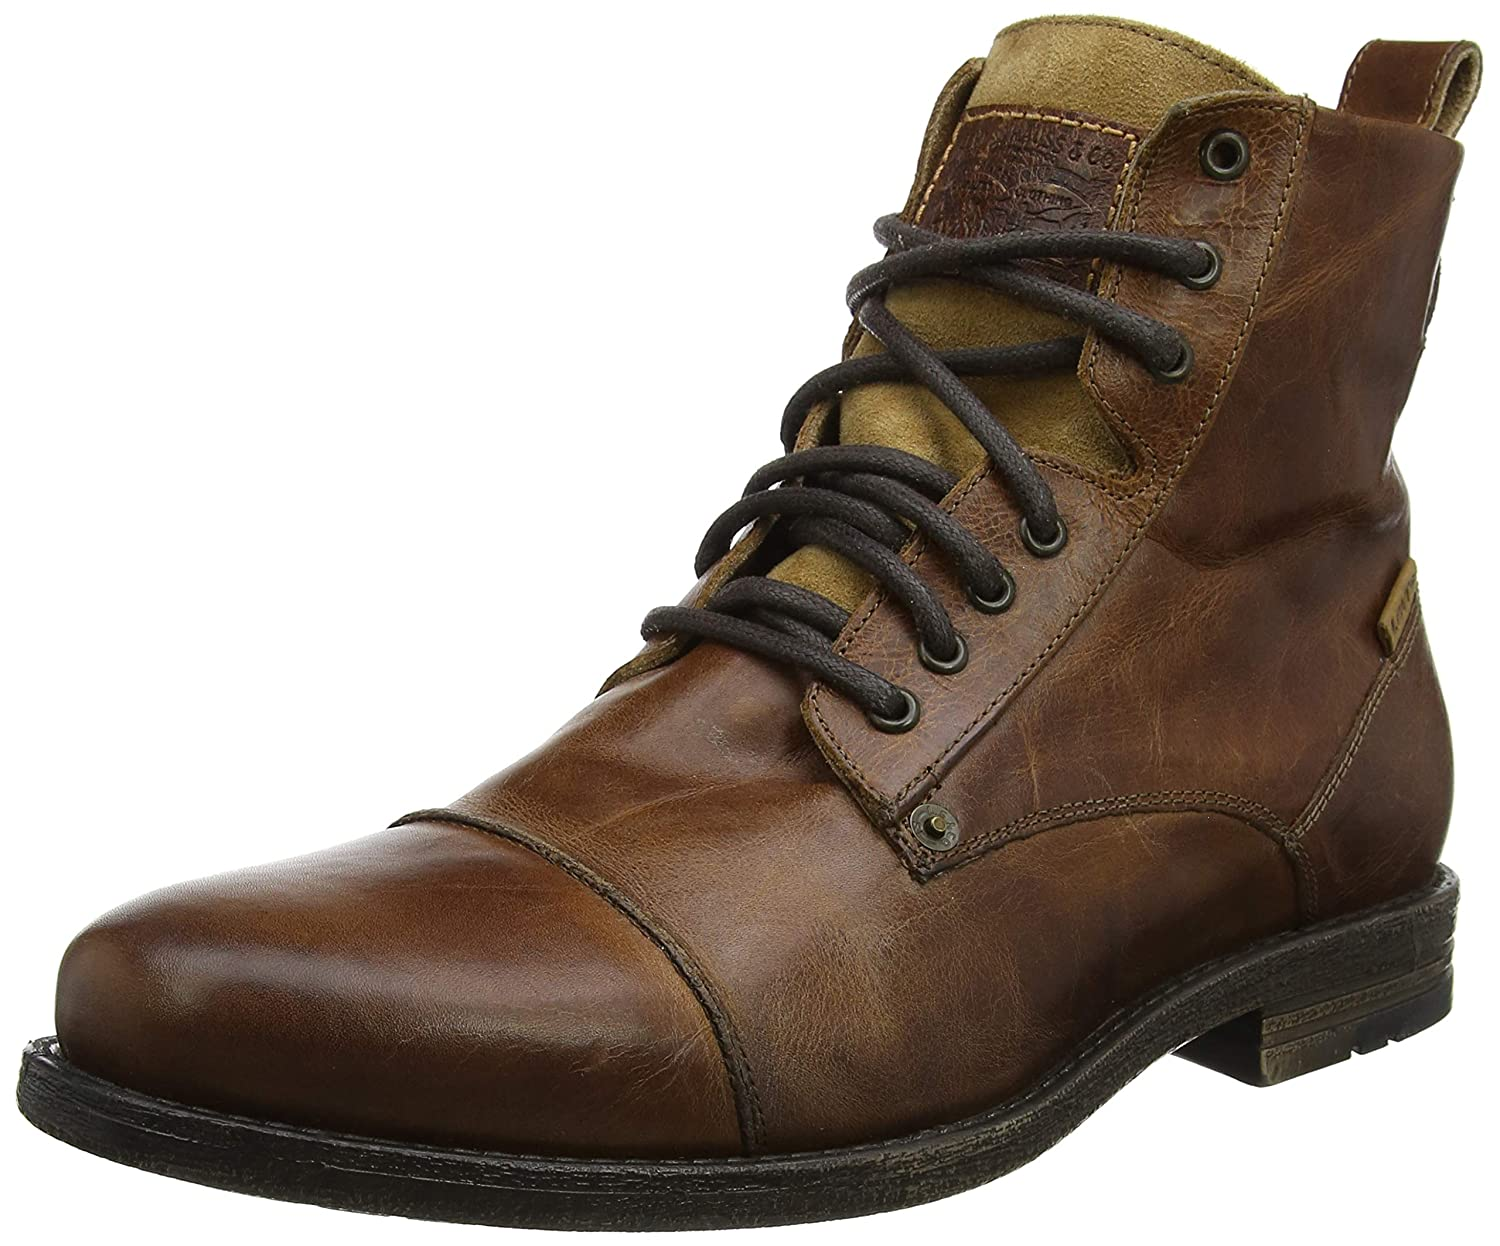 Levi s Men s s Emerson Ankle Boots  Amazon.co.uk  Shoes   Bags 5afbbd38579